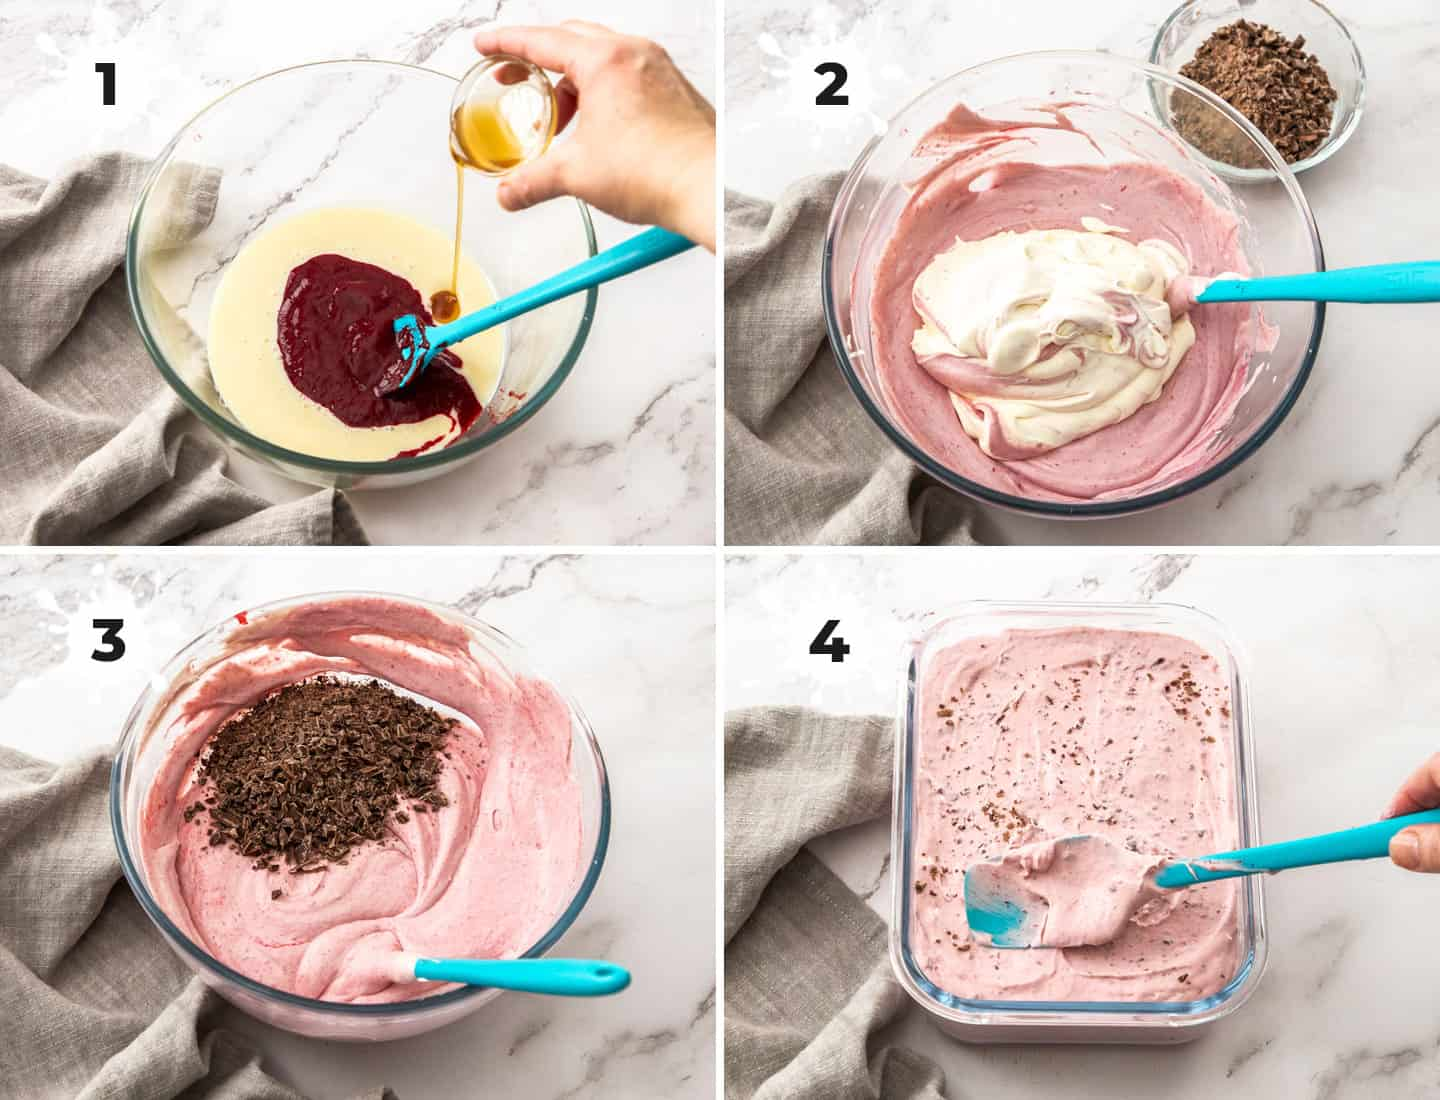 A collage of 4 images showing how to make the no churn raspberry ice cream.